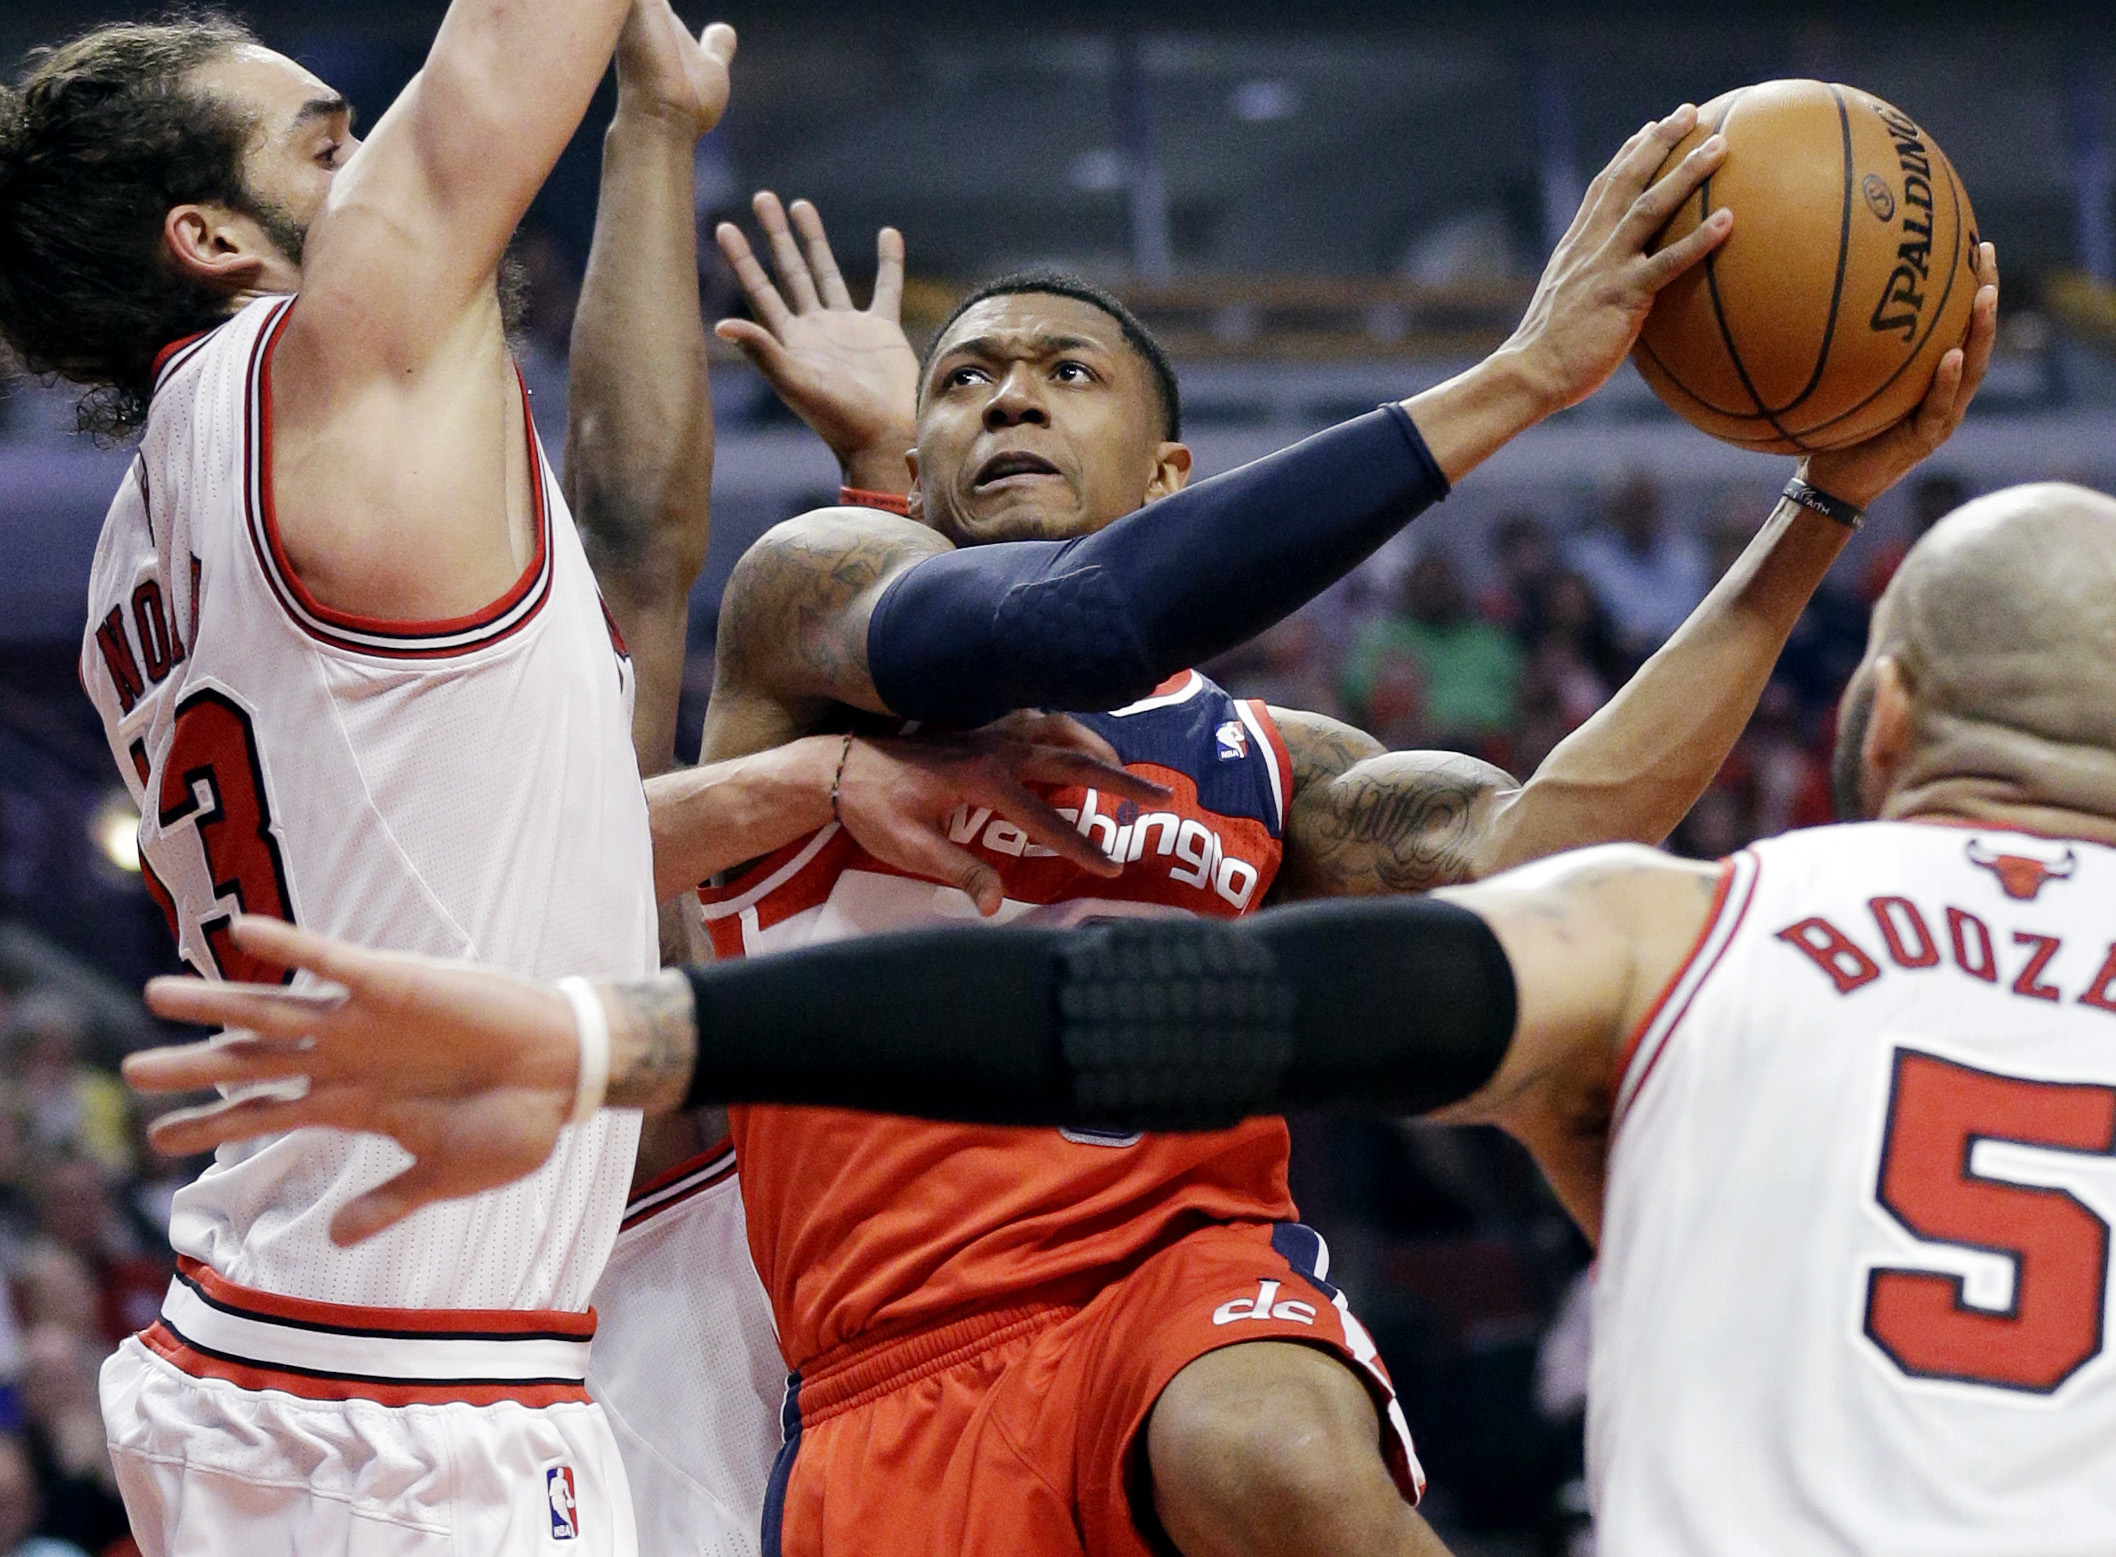 Column: Even Thibodeau can't defend this clunker